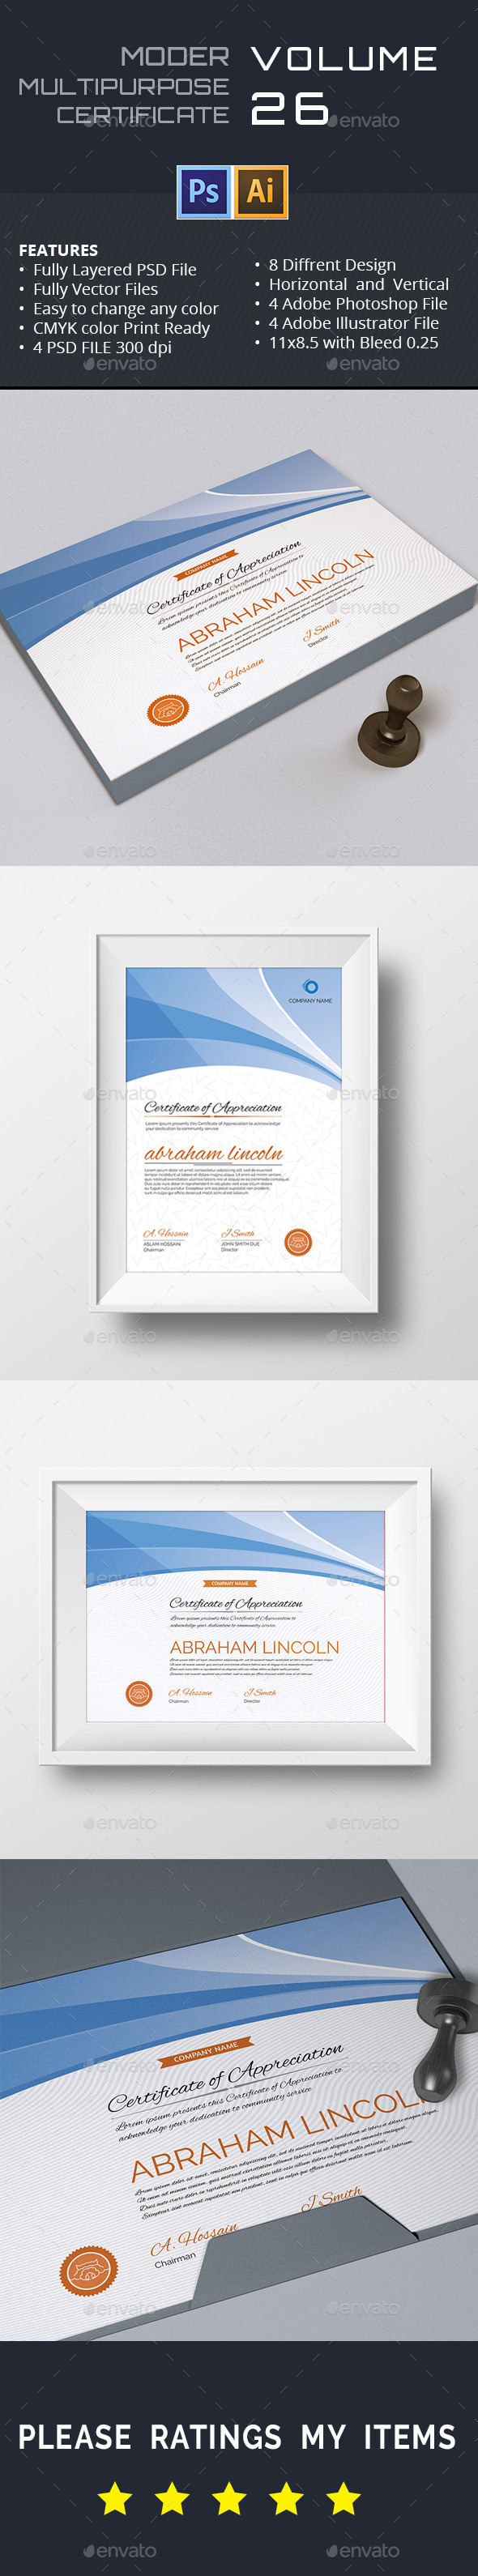 Modern Multipurpose Certificate GD026 - Certificates Stationery